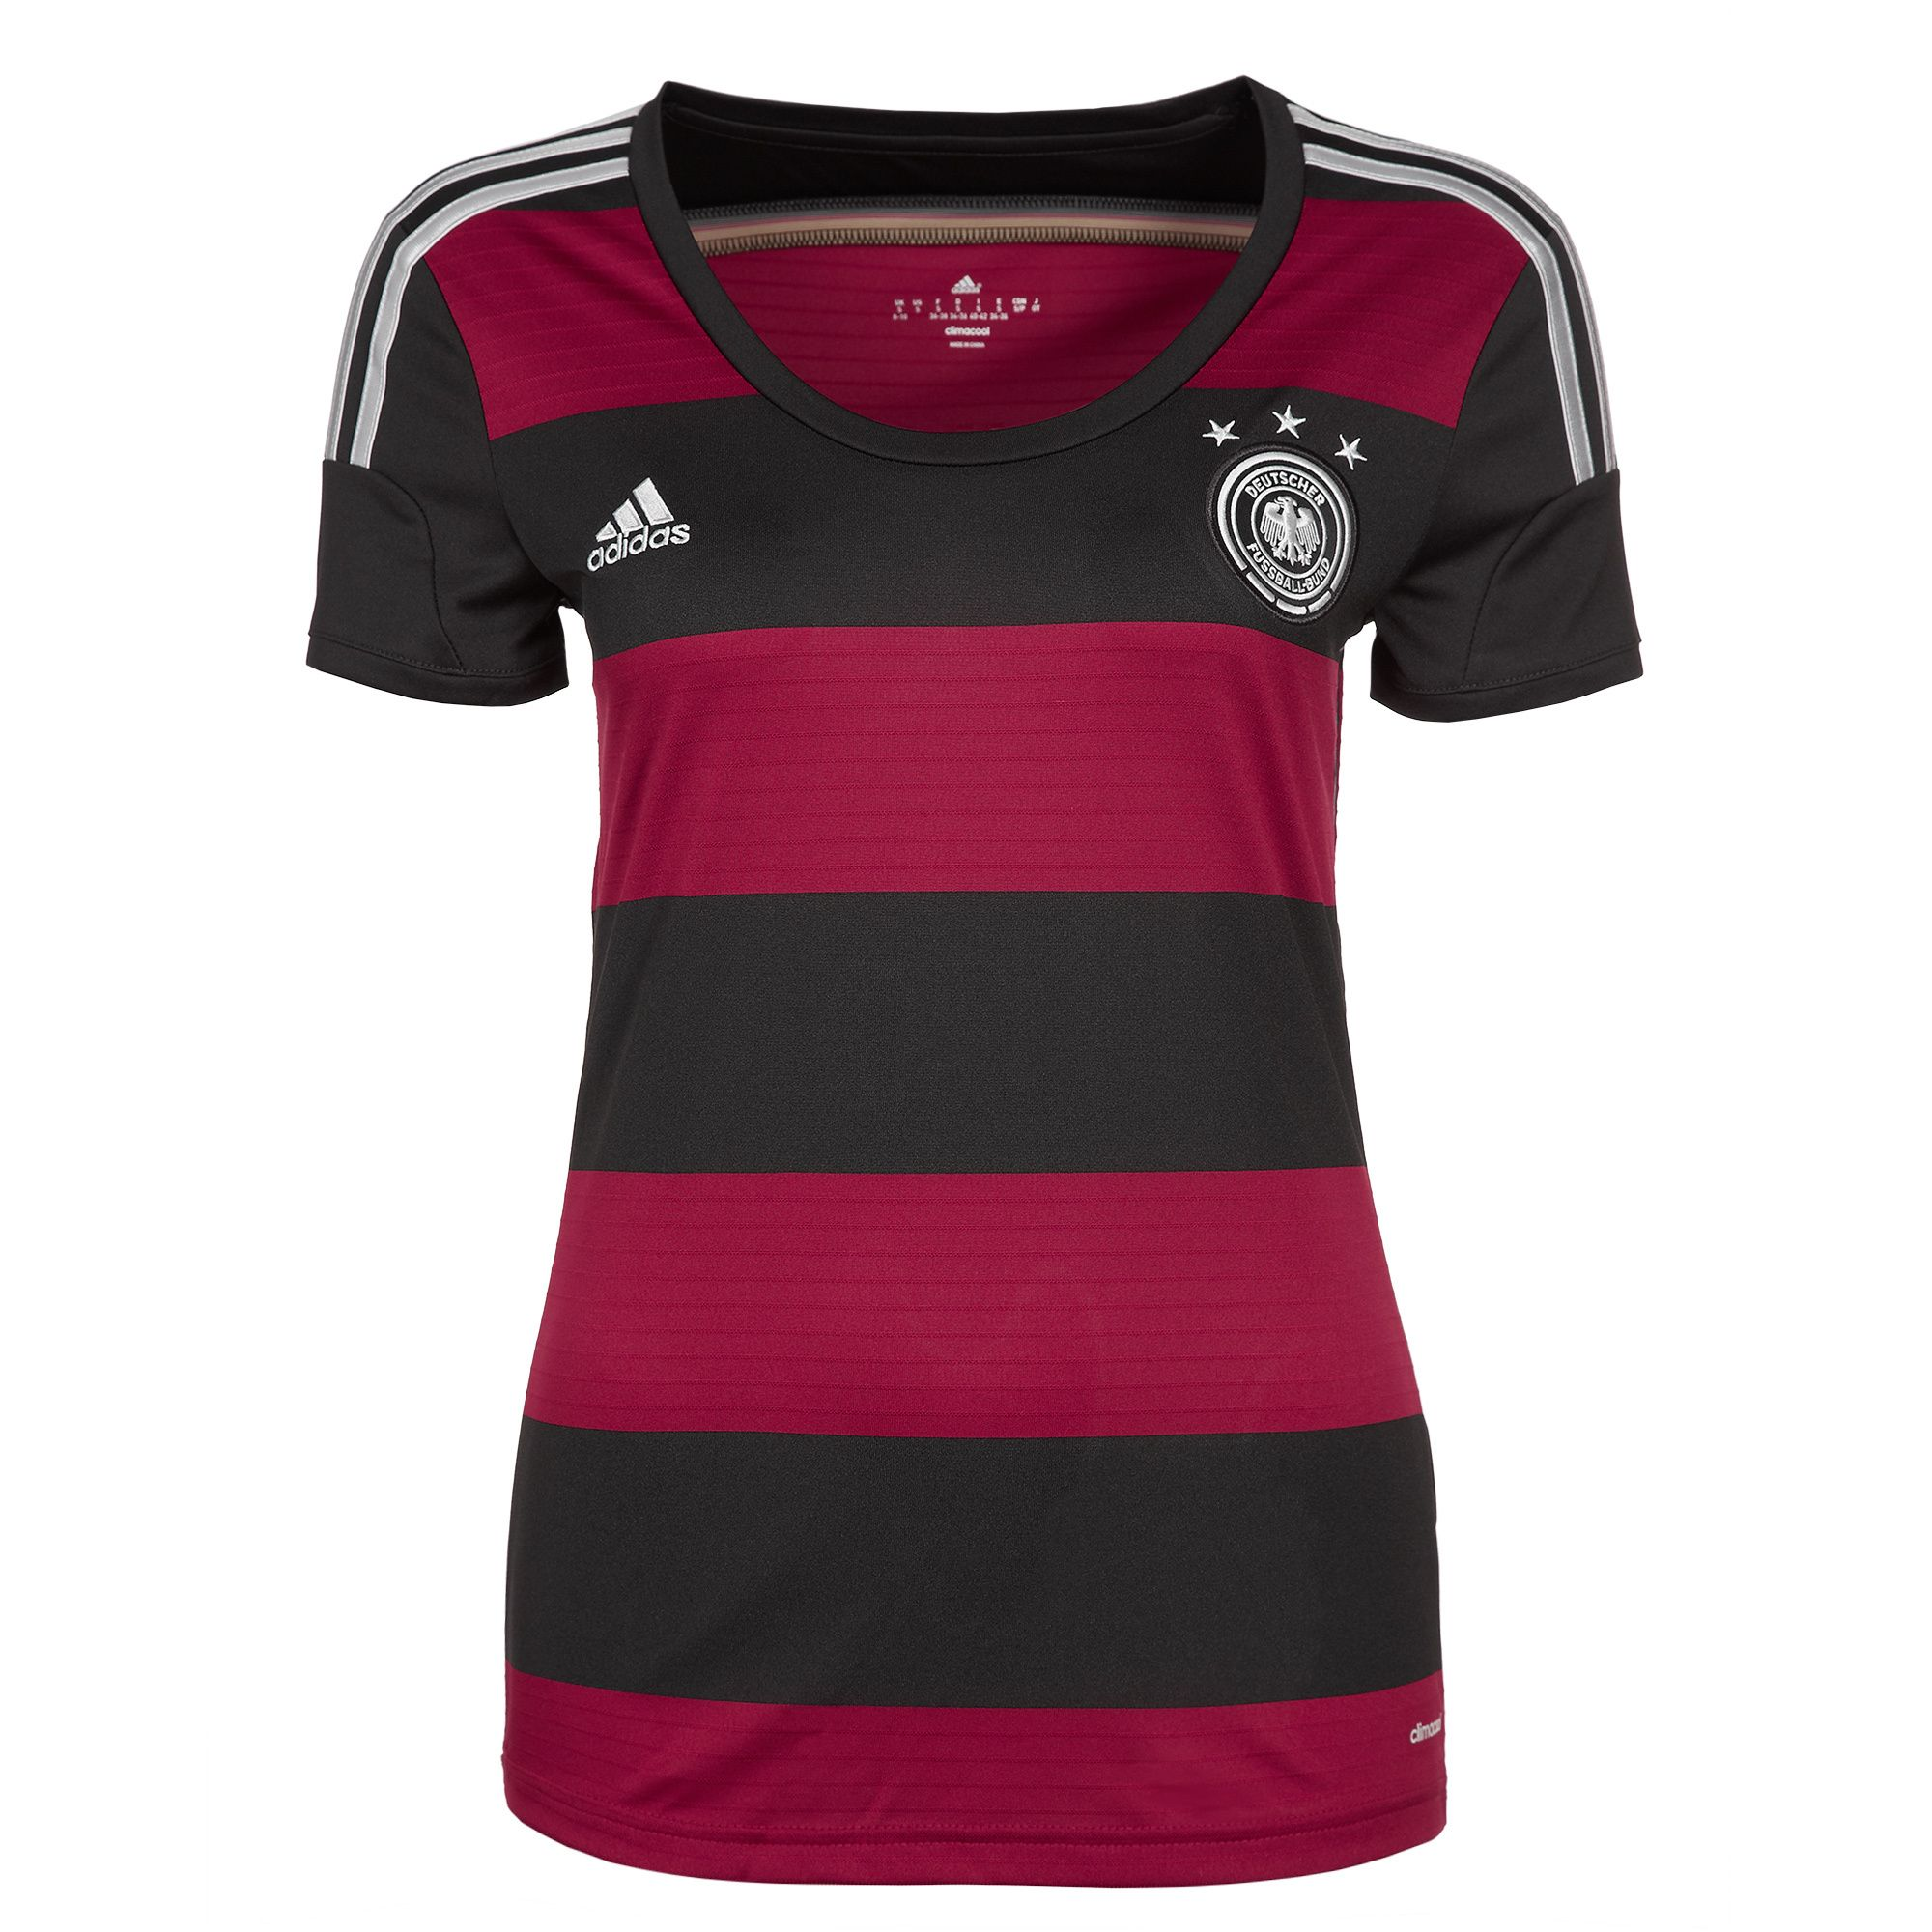 ADIDAS PERFORMANCE adidas Performance DFB Trikot Away WM 2014 Damen